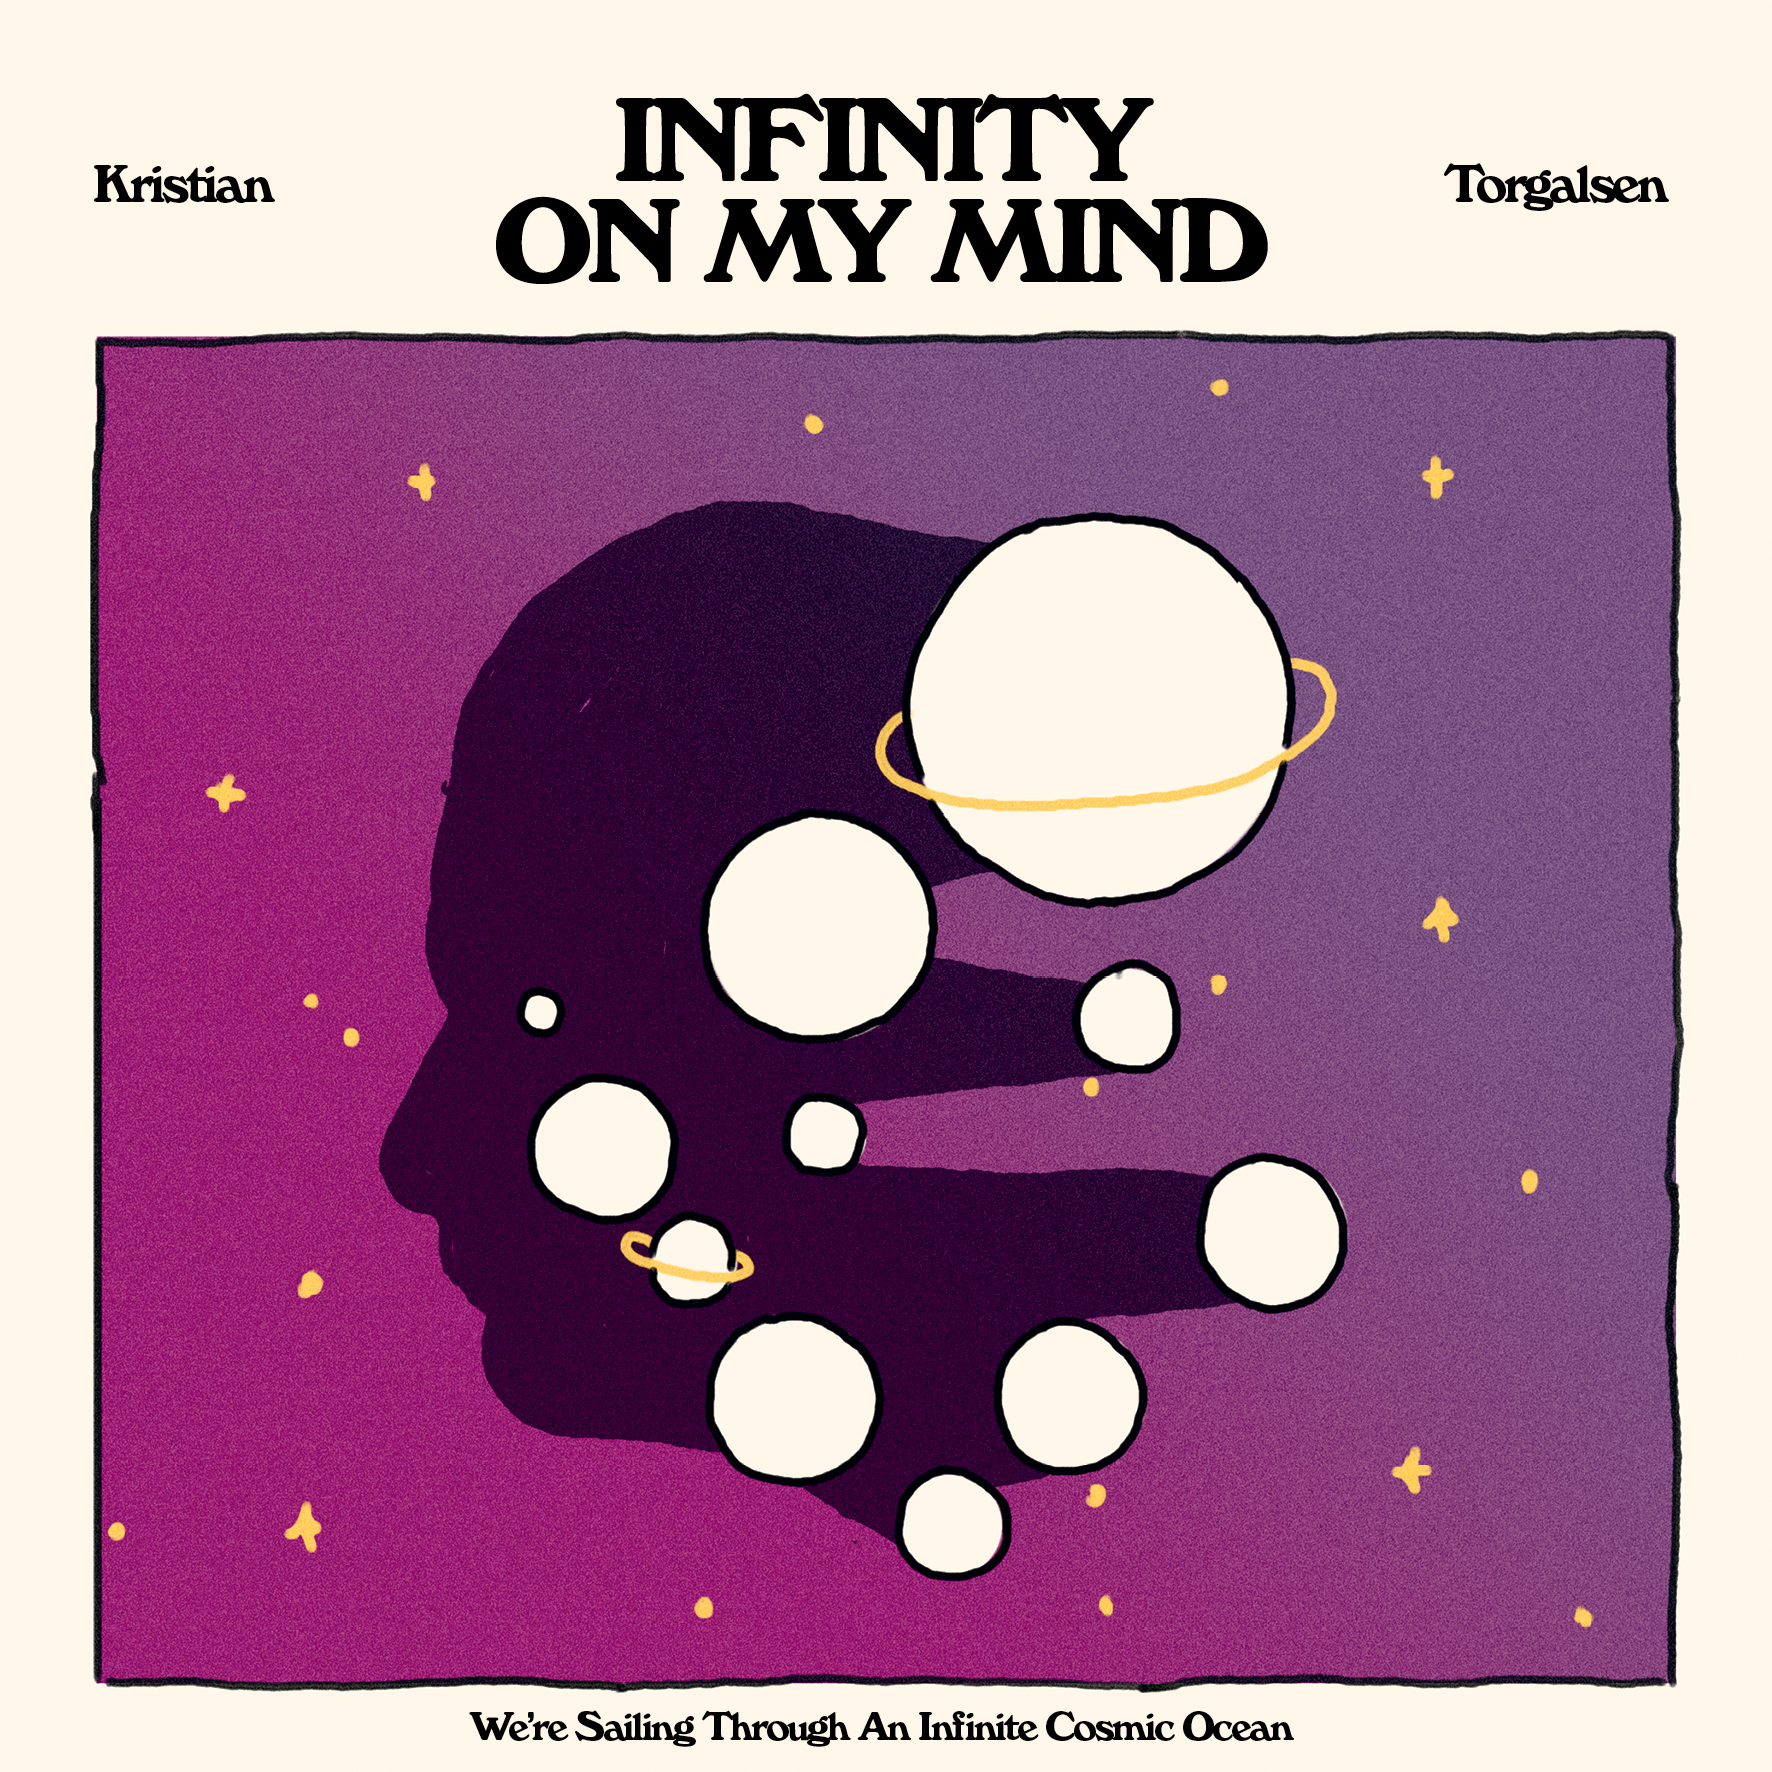 Infinity On My Mind - Released 13. october 2017